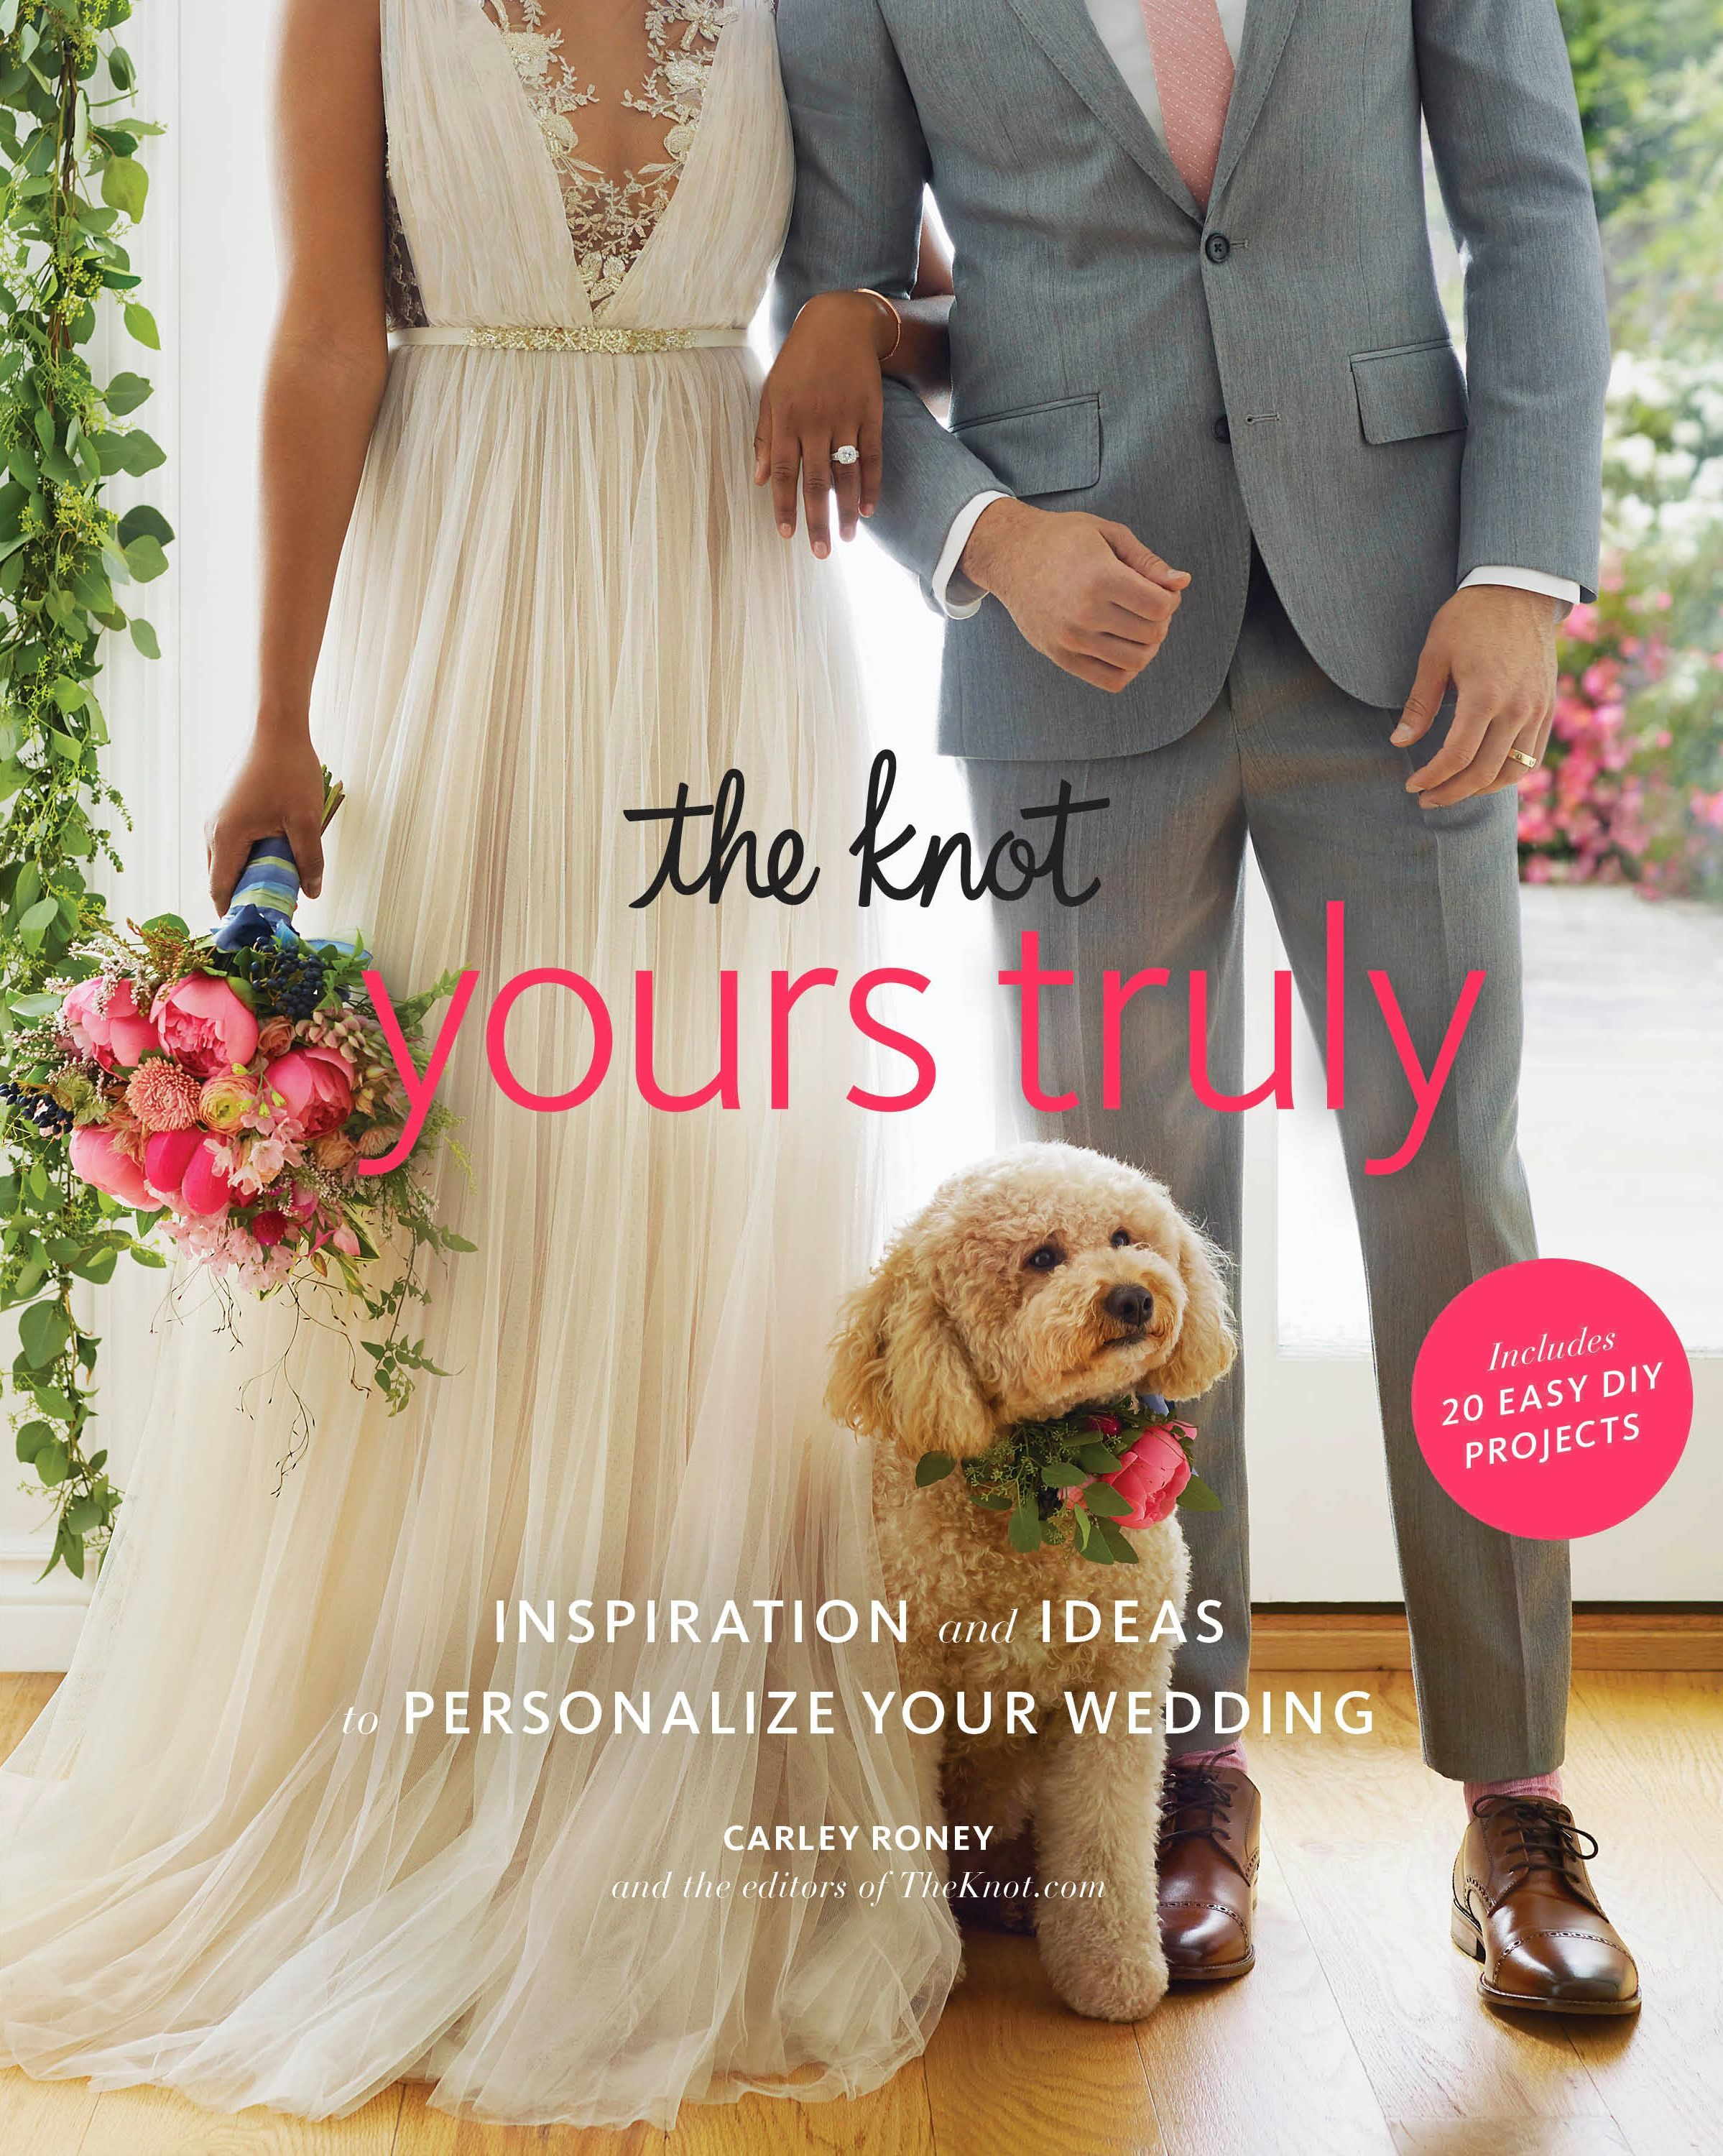 The Knot Yours Truly by Carley Roney, Editors of The Knot